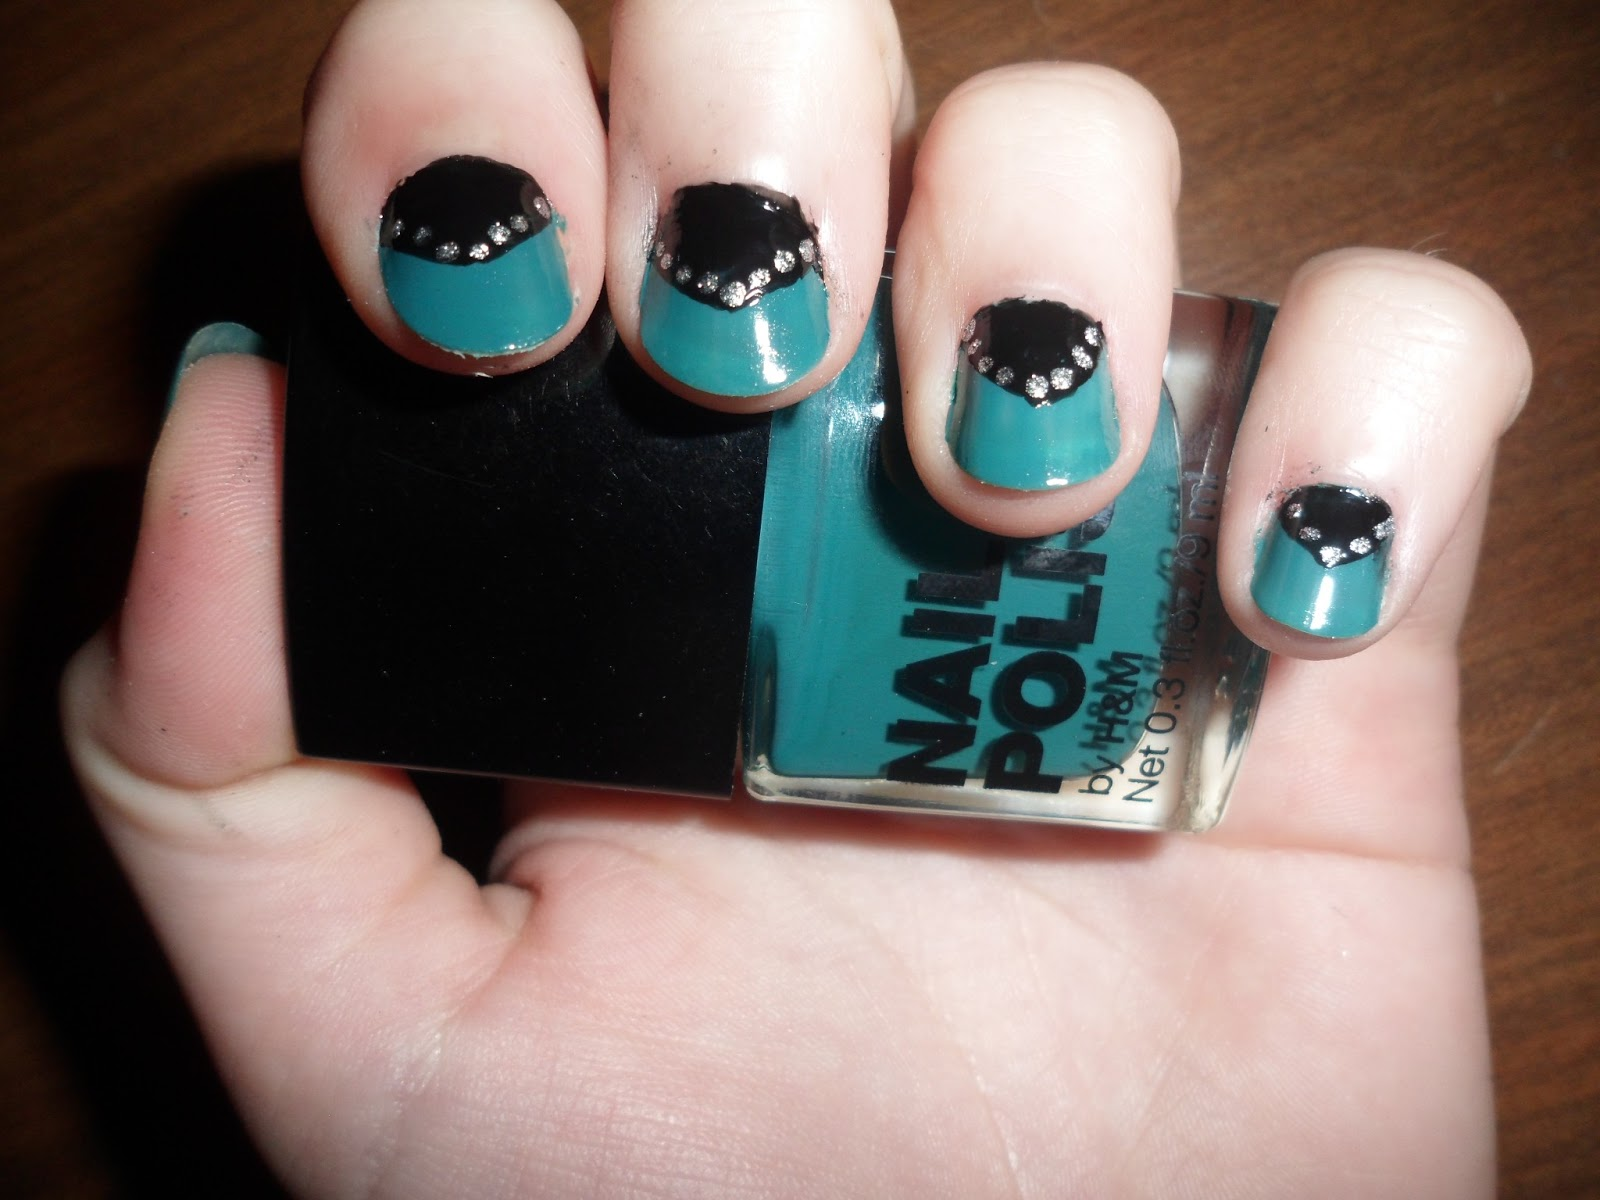 SophieClaira: Blue, black and silver nails.